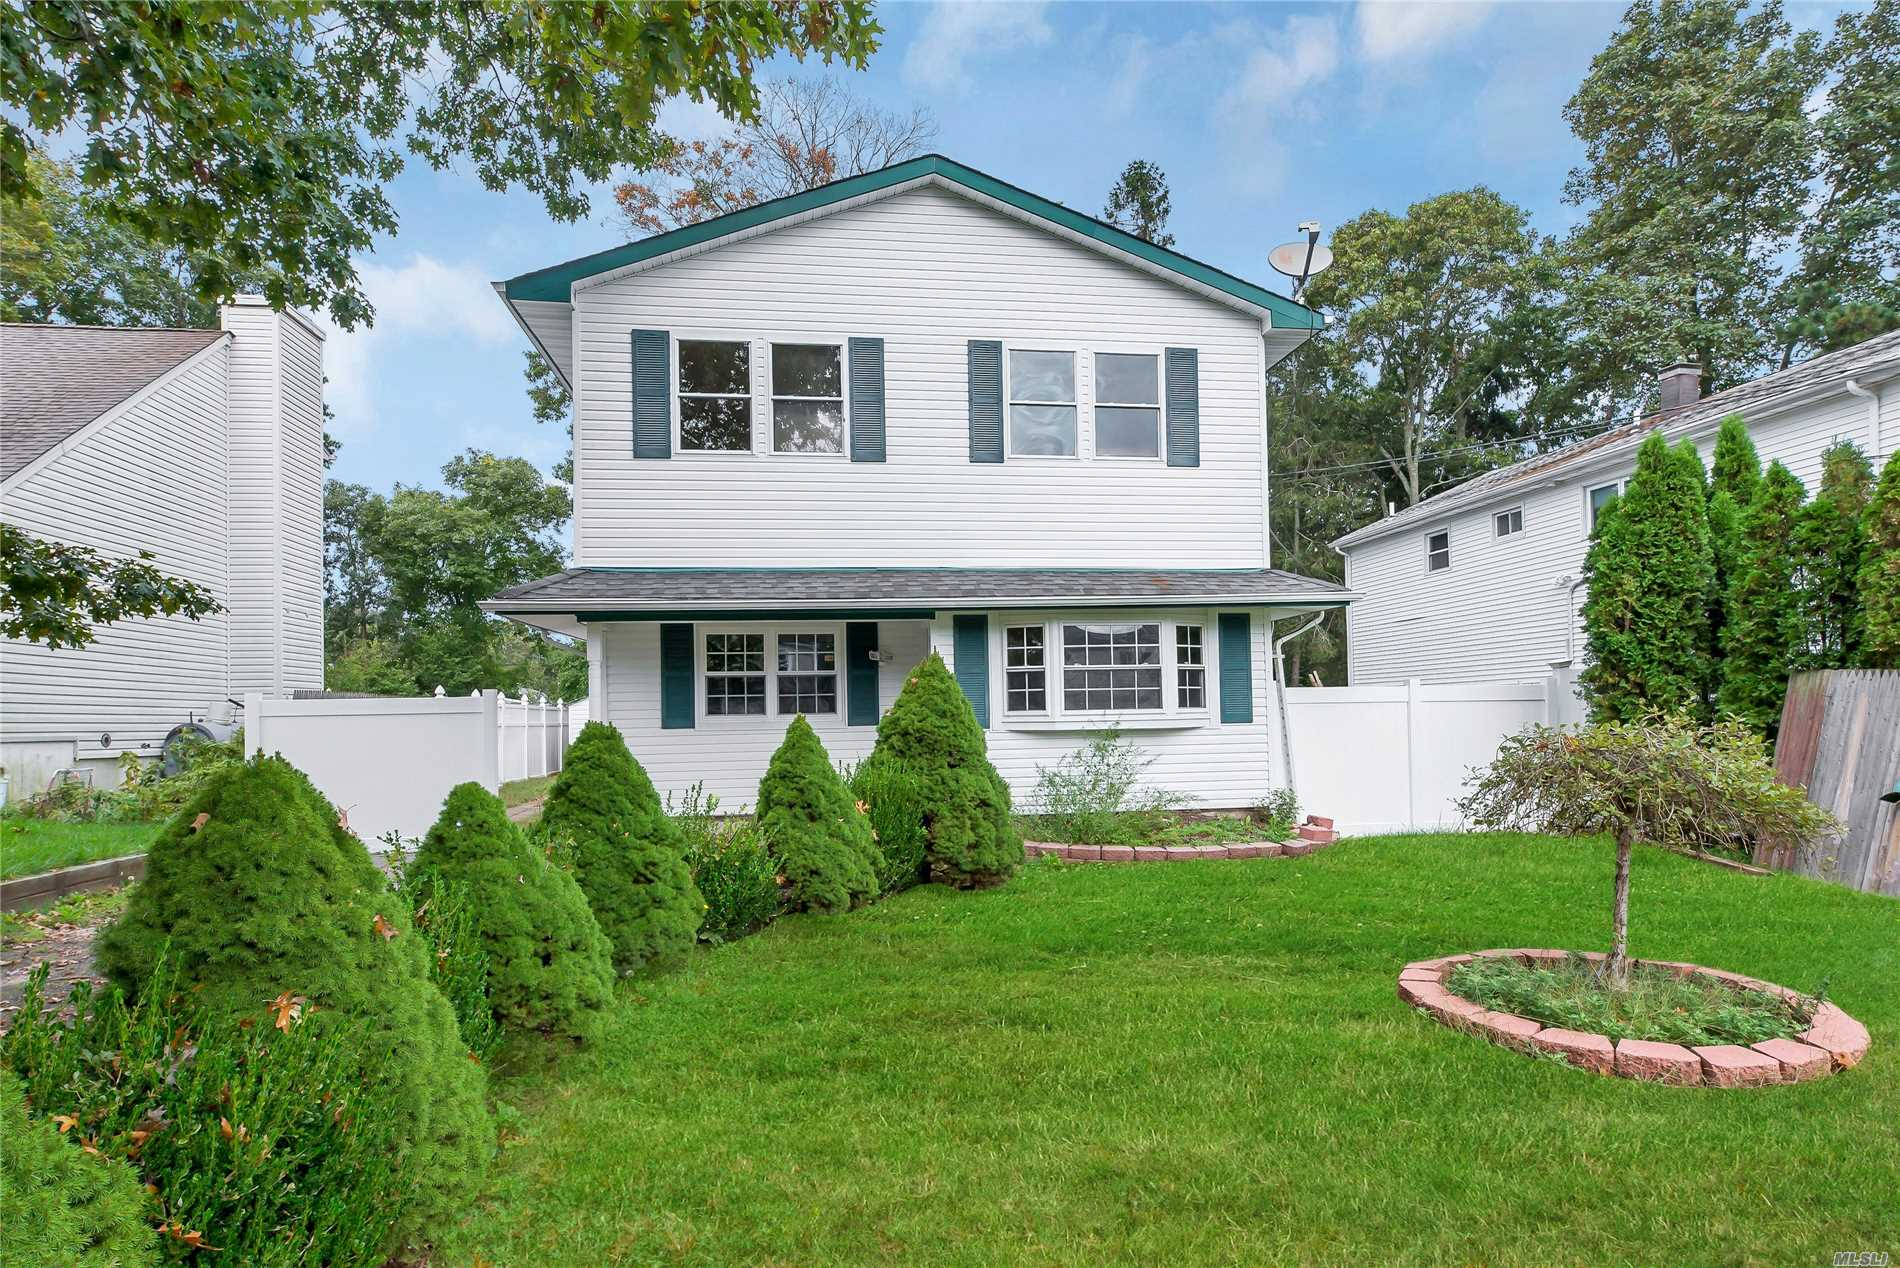 Newly Renovated Colonial, 3 Bedrooms + 1 Huge Master Bedroom With Wic And Full Bathroom, Eat In Kitchen, Living/Dining Room, Laundry Room.